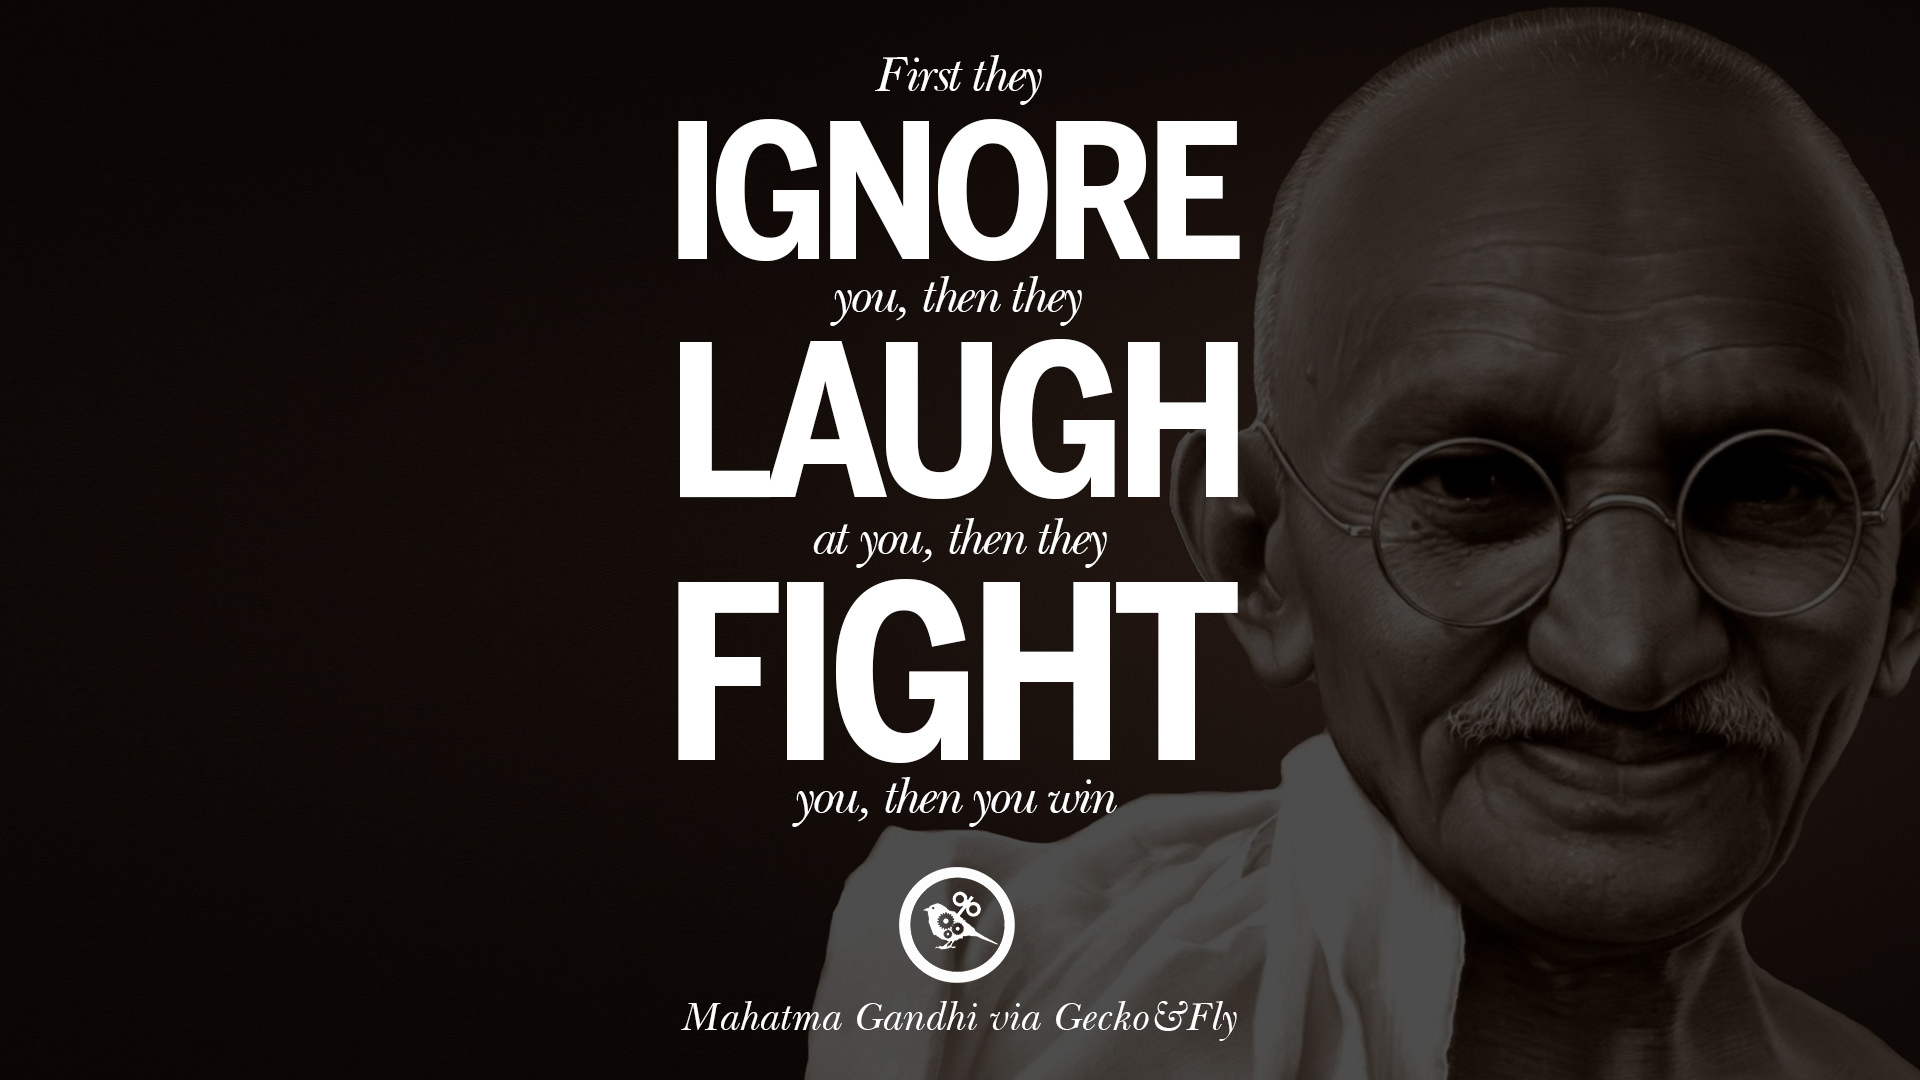 Gandhi Quotes On Love Magnificent 20 Mahatma Gandhi Quotes And Frases On Peace Protest And Civil